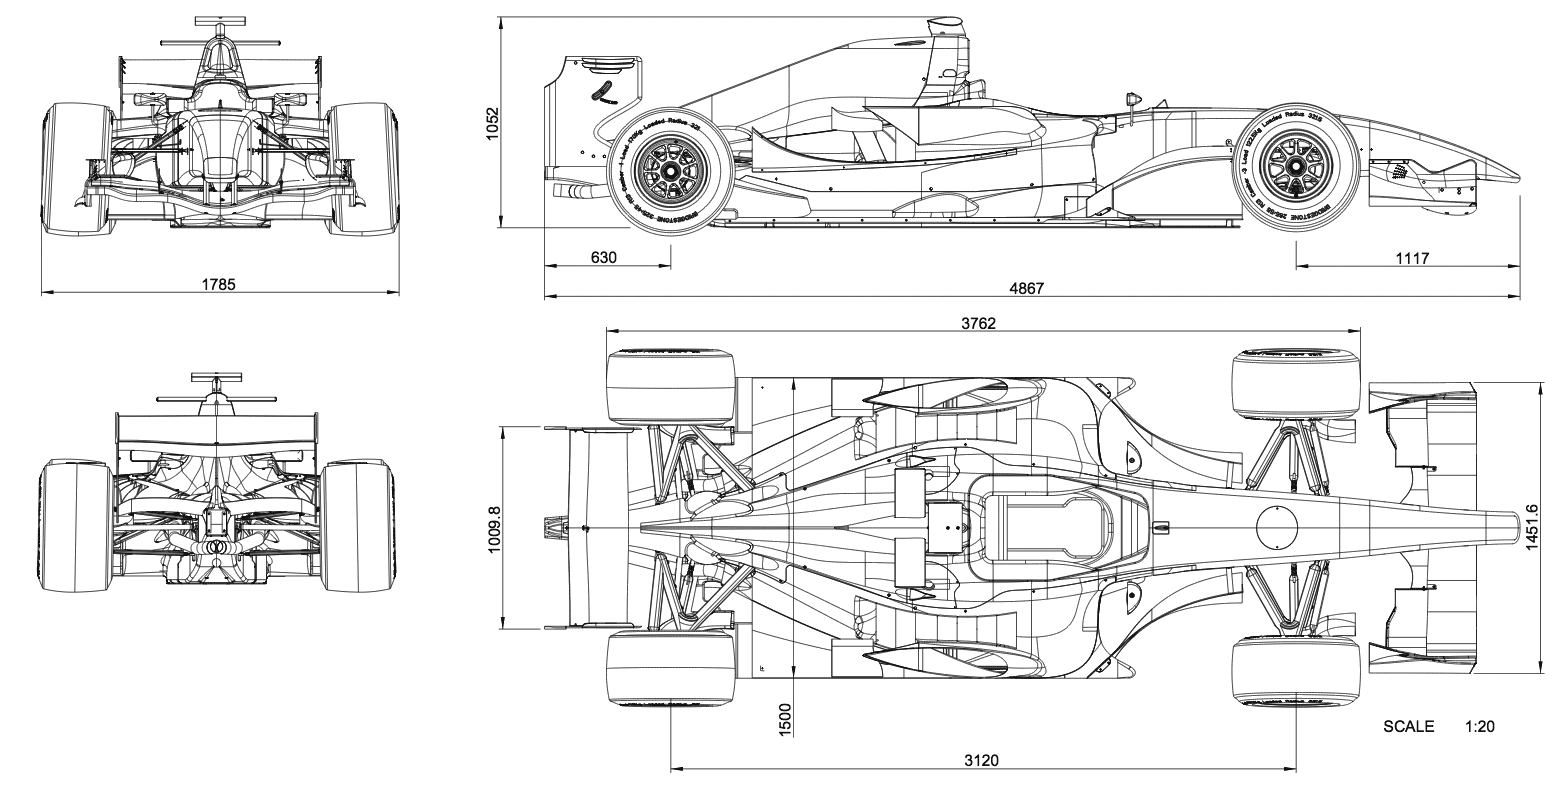 Dallara gp208 blueprint download free blueprint for 3d modeling dallara gp208 blueprint malvernweather Gallery